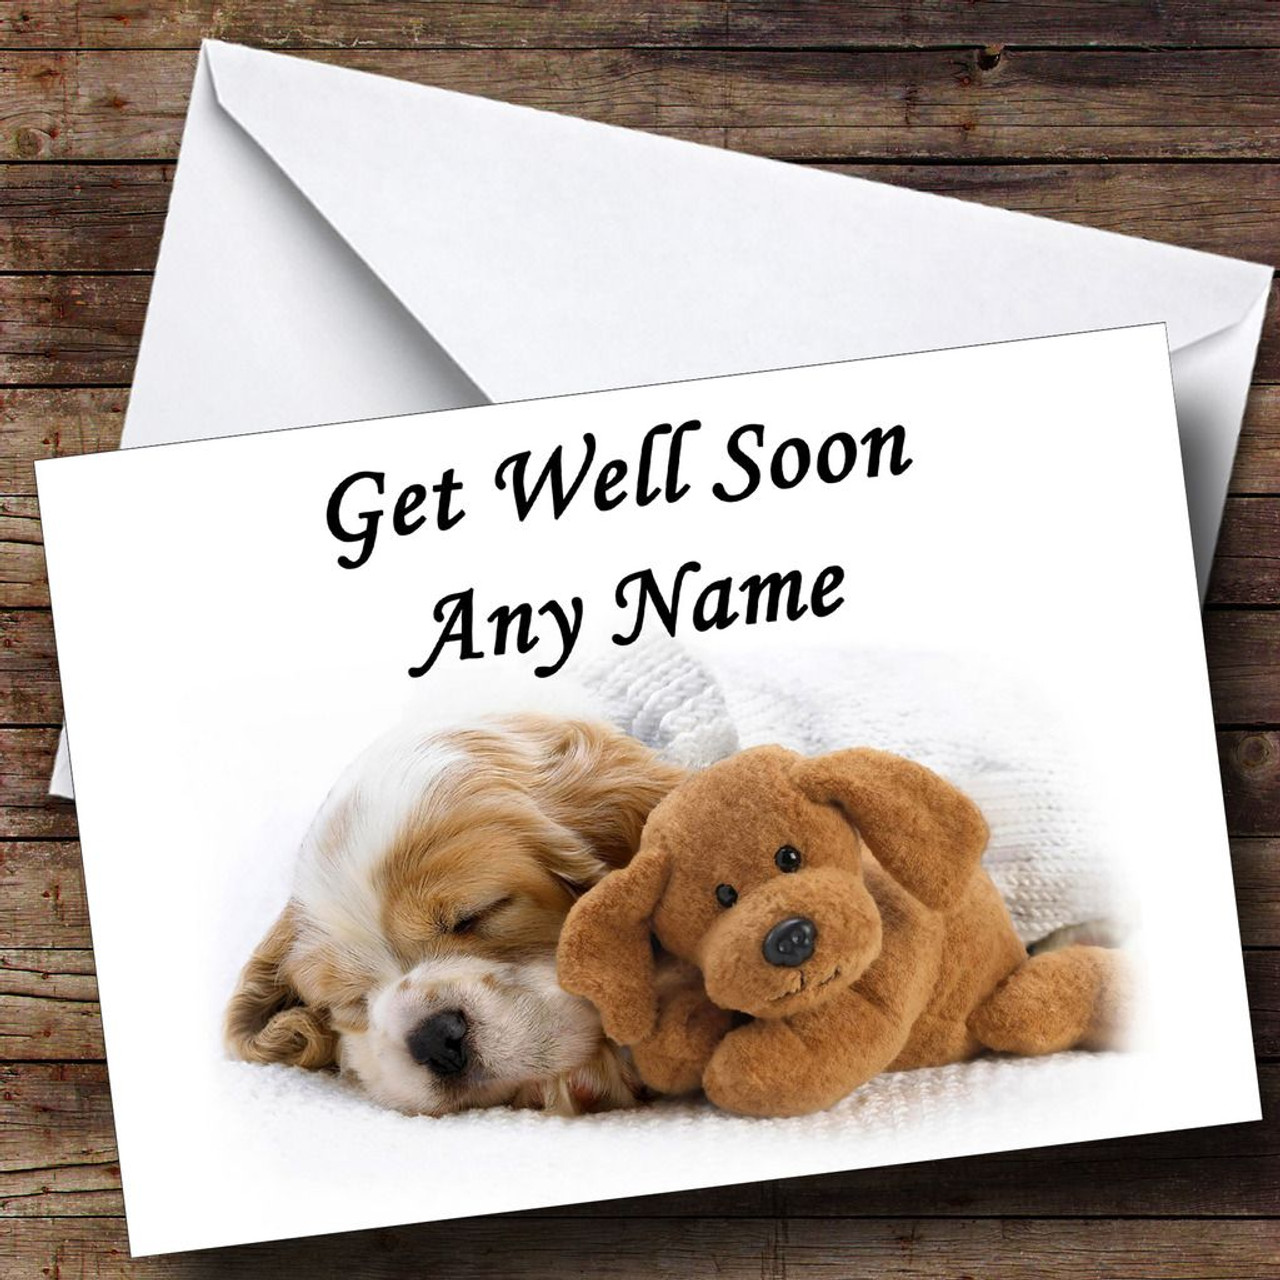 Well known Puppy Dog And Teddy Personalised Get Well Soon Card - The Card Zoo KX02